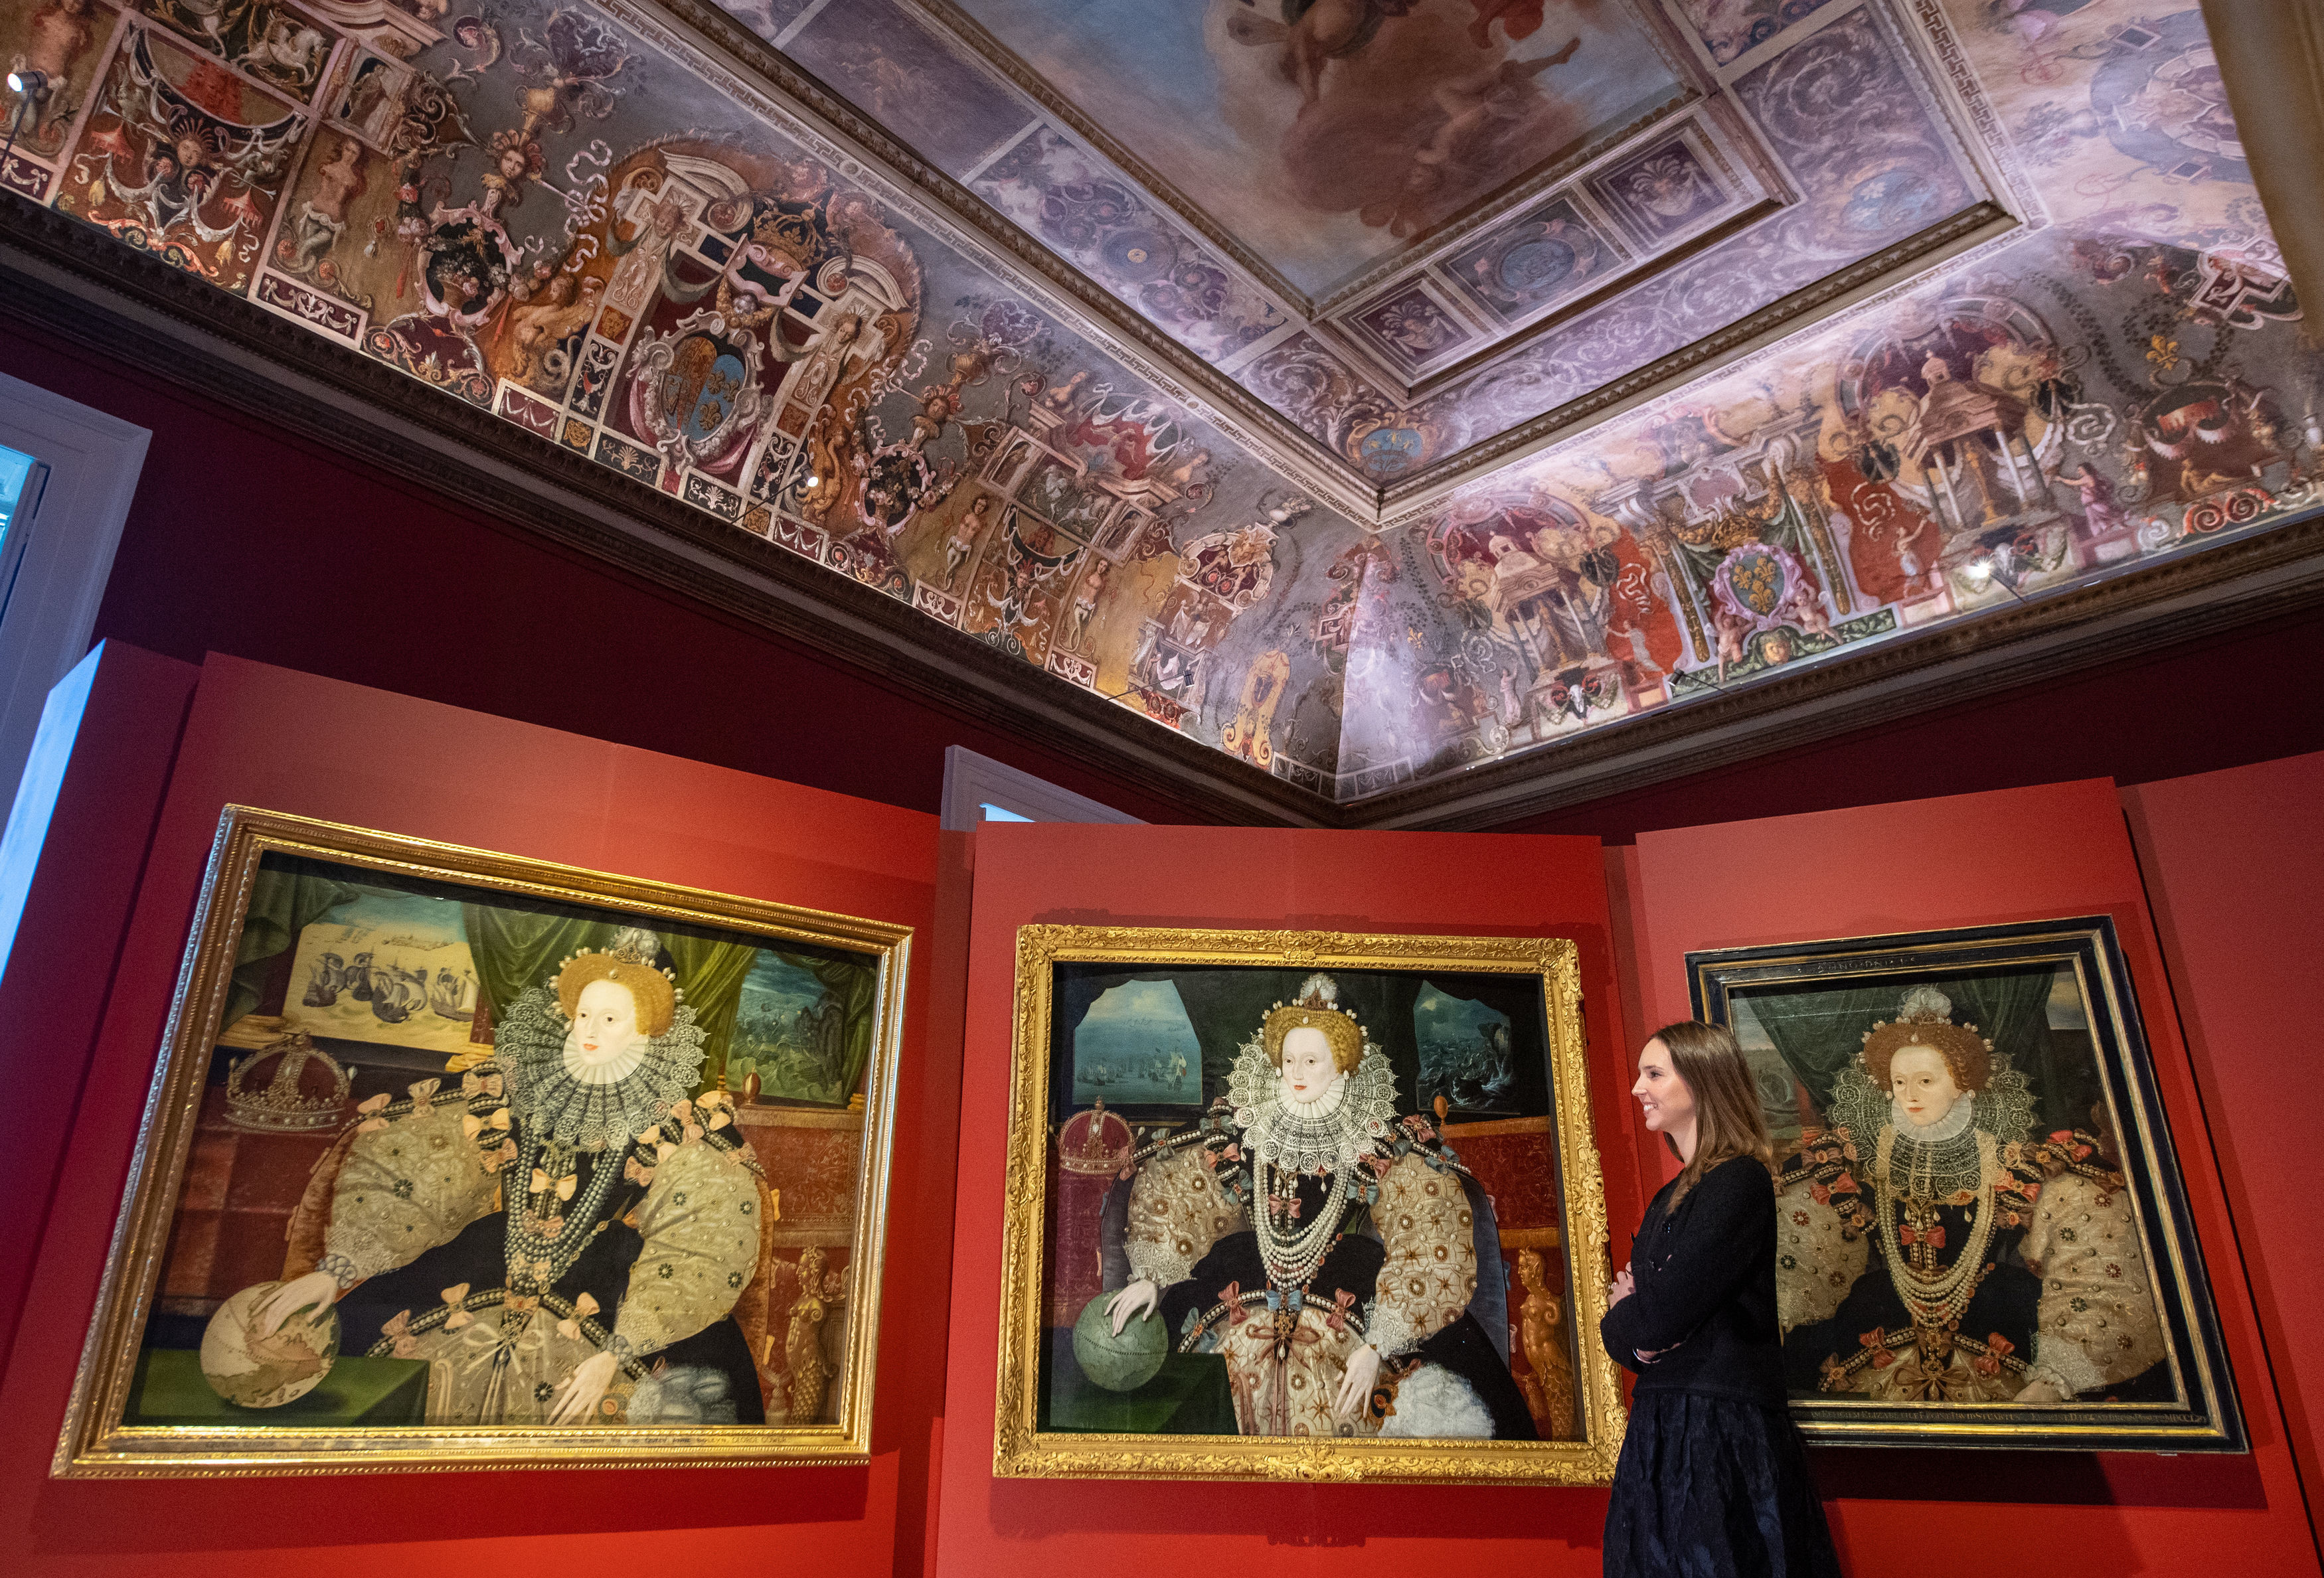 All three iconic Armada Portraits on display together for the first time in 430 years